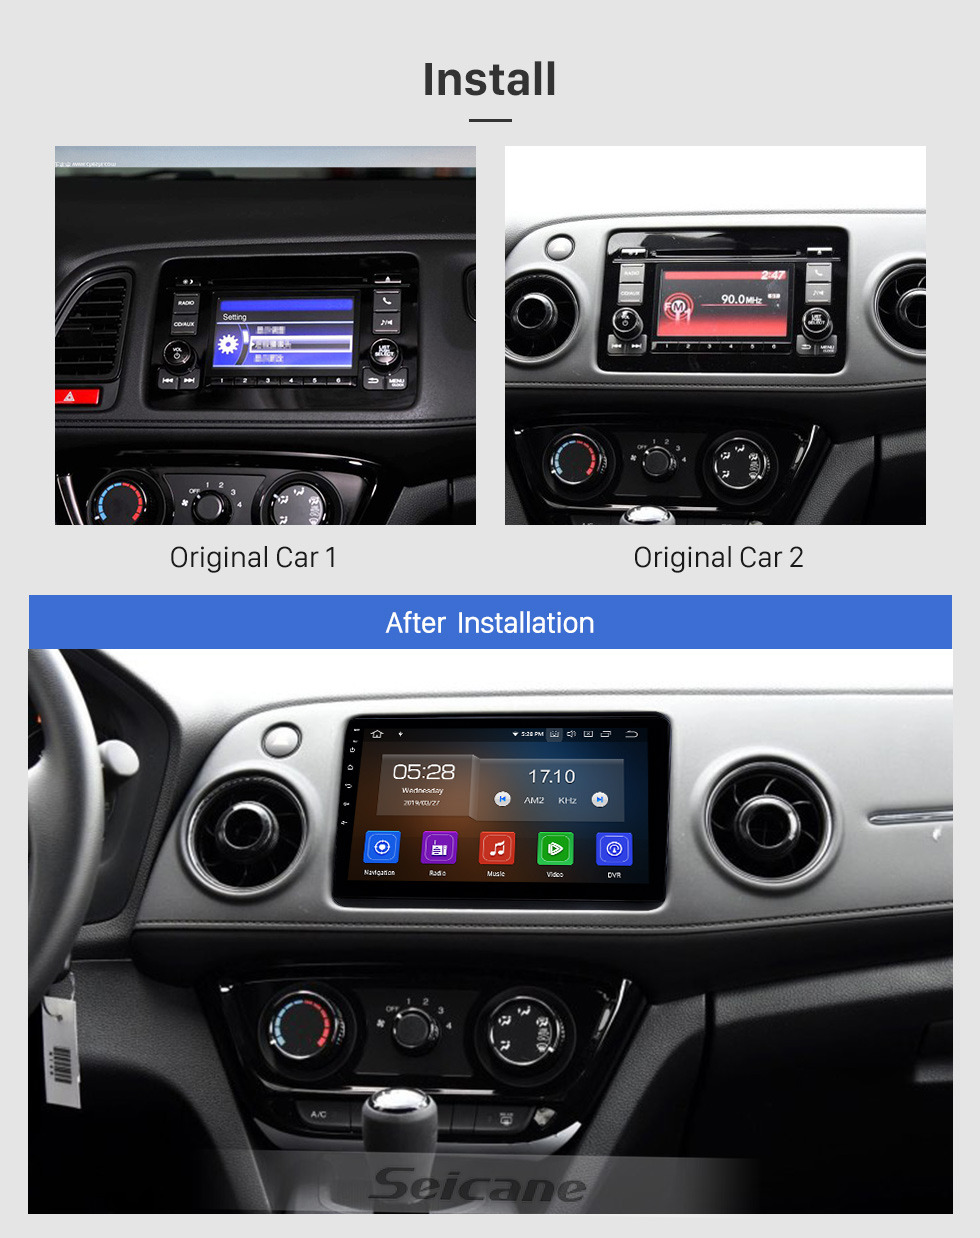 Seicane 10.1 inch Android 9.0 Radio for 2014-2016 Honda XRV with HD Touchscreen GPS Nav Carplay Bluetooth FM support DVR TPMS Steering Wheel Control 4G WIFI SD